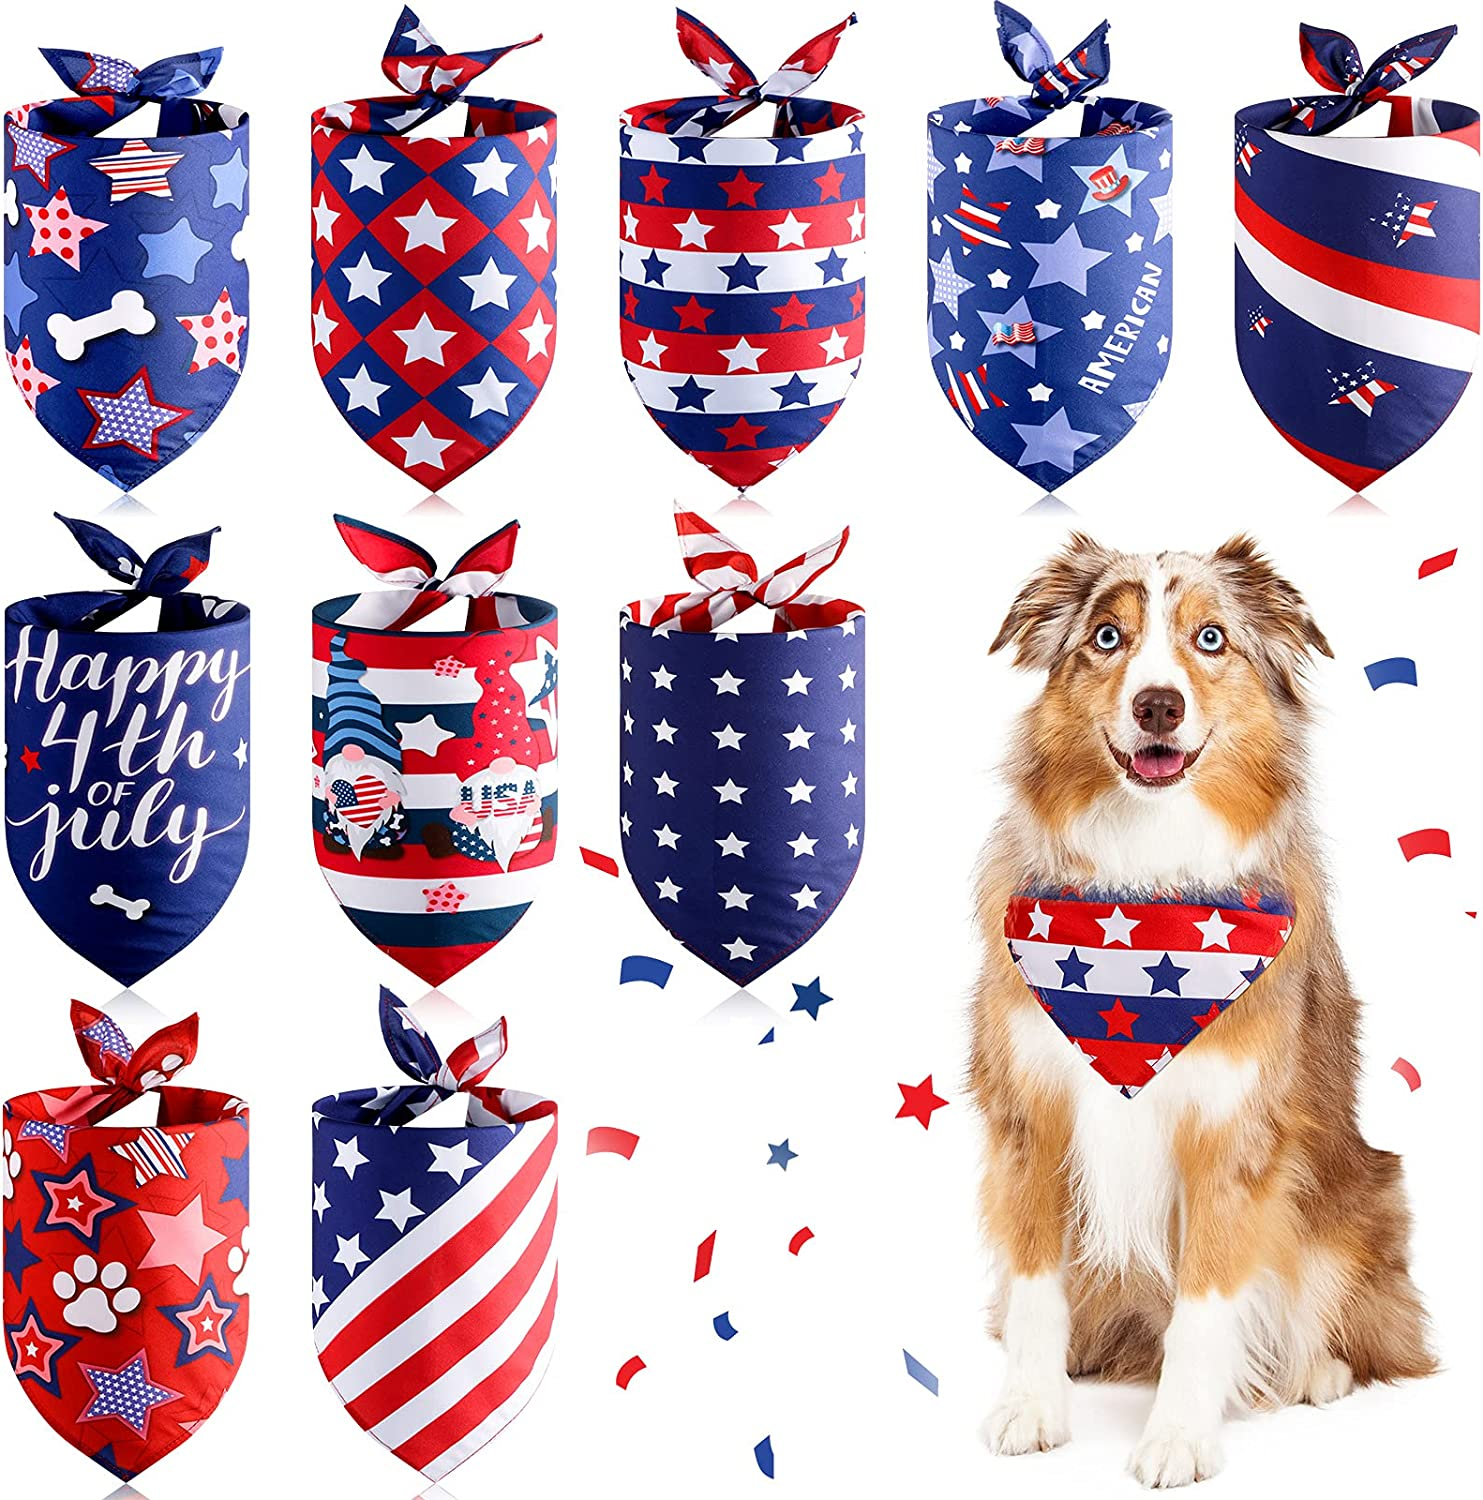 10 Pieces American Flag Dog Bandana 4th of July Dog Bandanas Patriotic Dog Bandanas Triangle Bib Scarf Reversible Accessories Independence Day Bibs Dog Kerchief Set for Small Medium Large Dogs